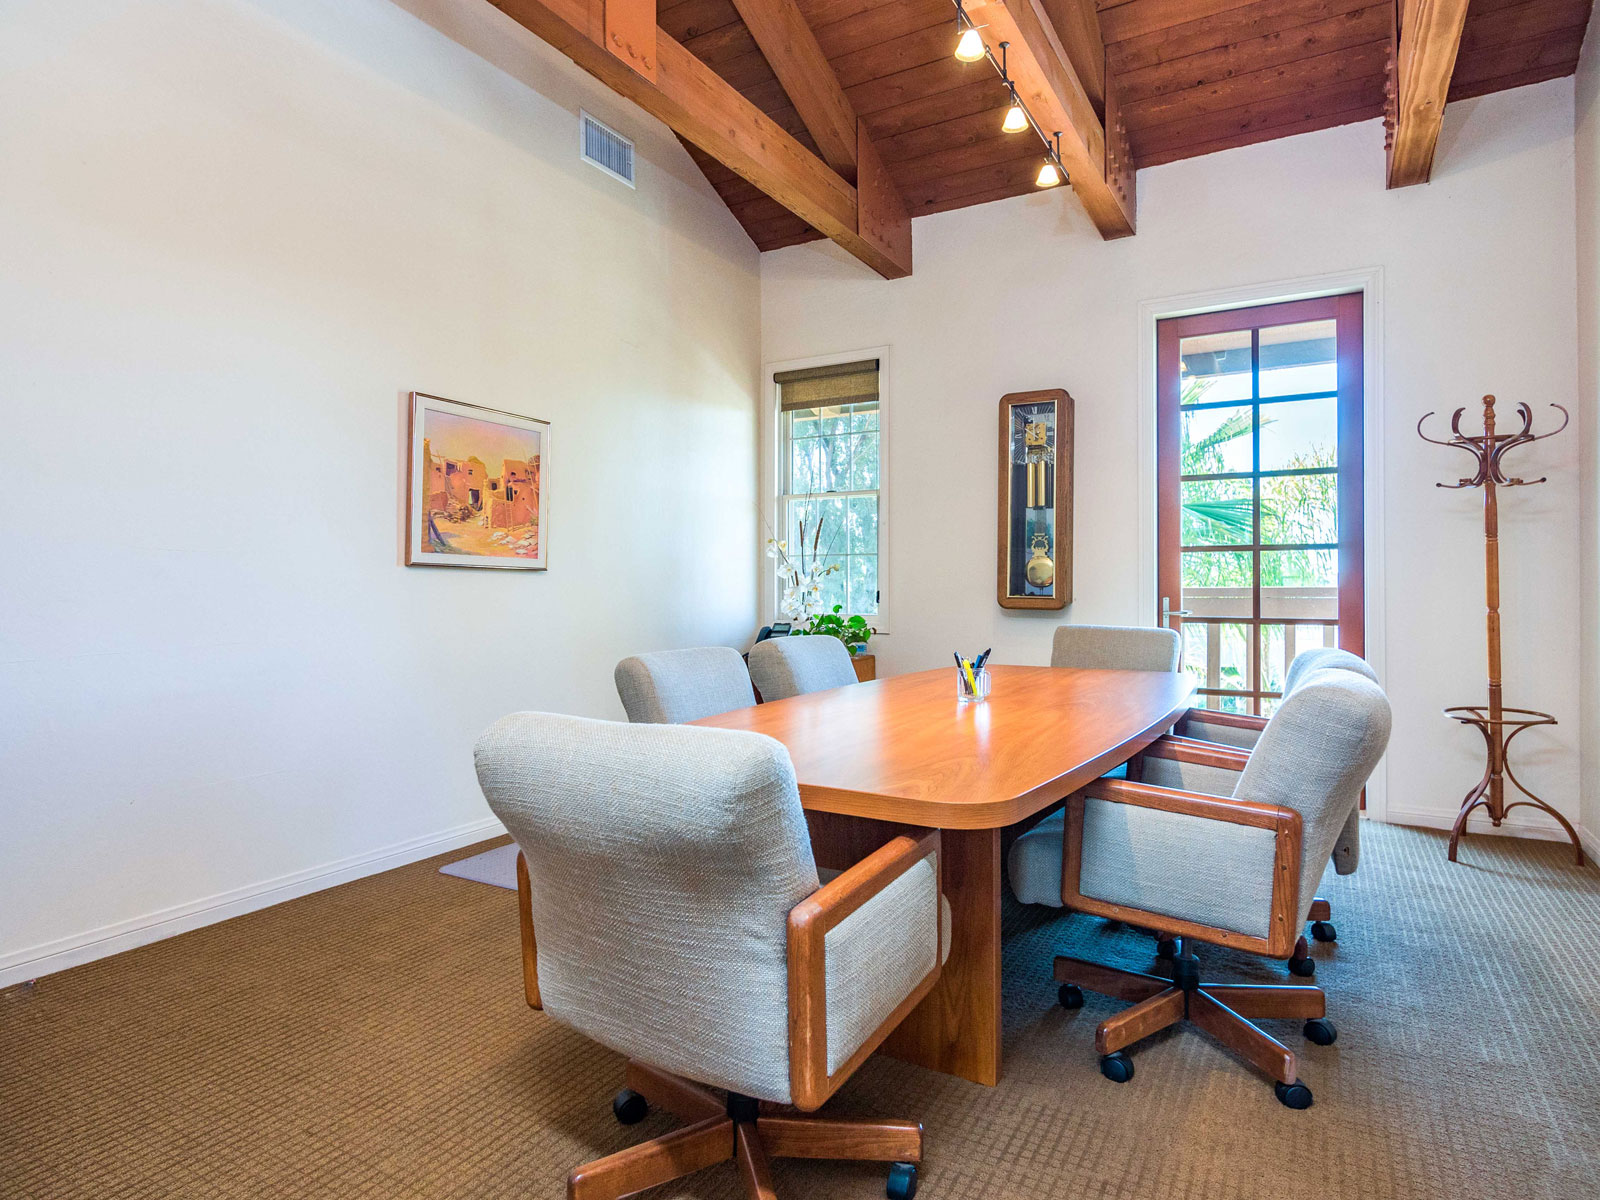 316-s-melrose-vista-ca-professional-office-for-lease-206-2